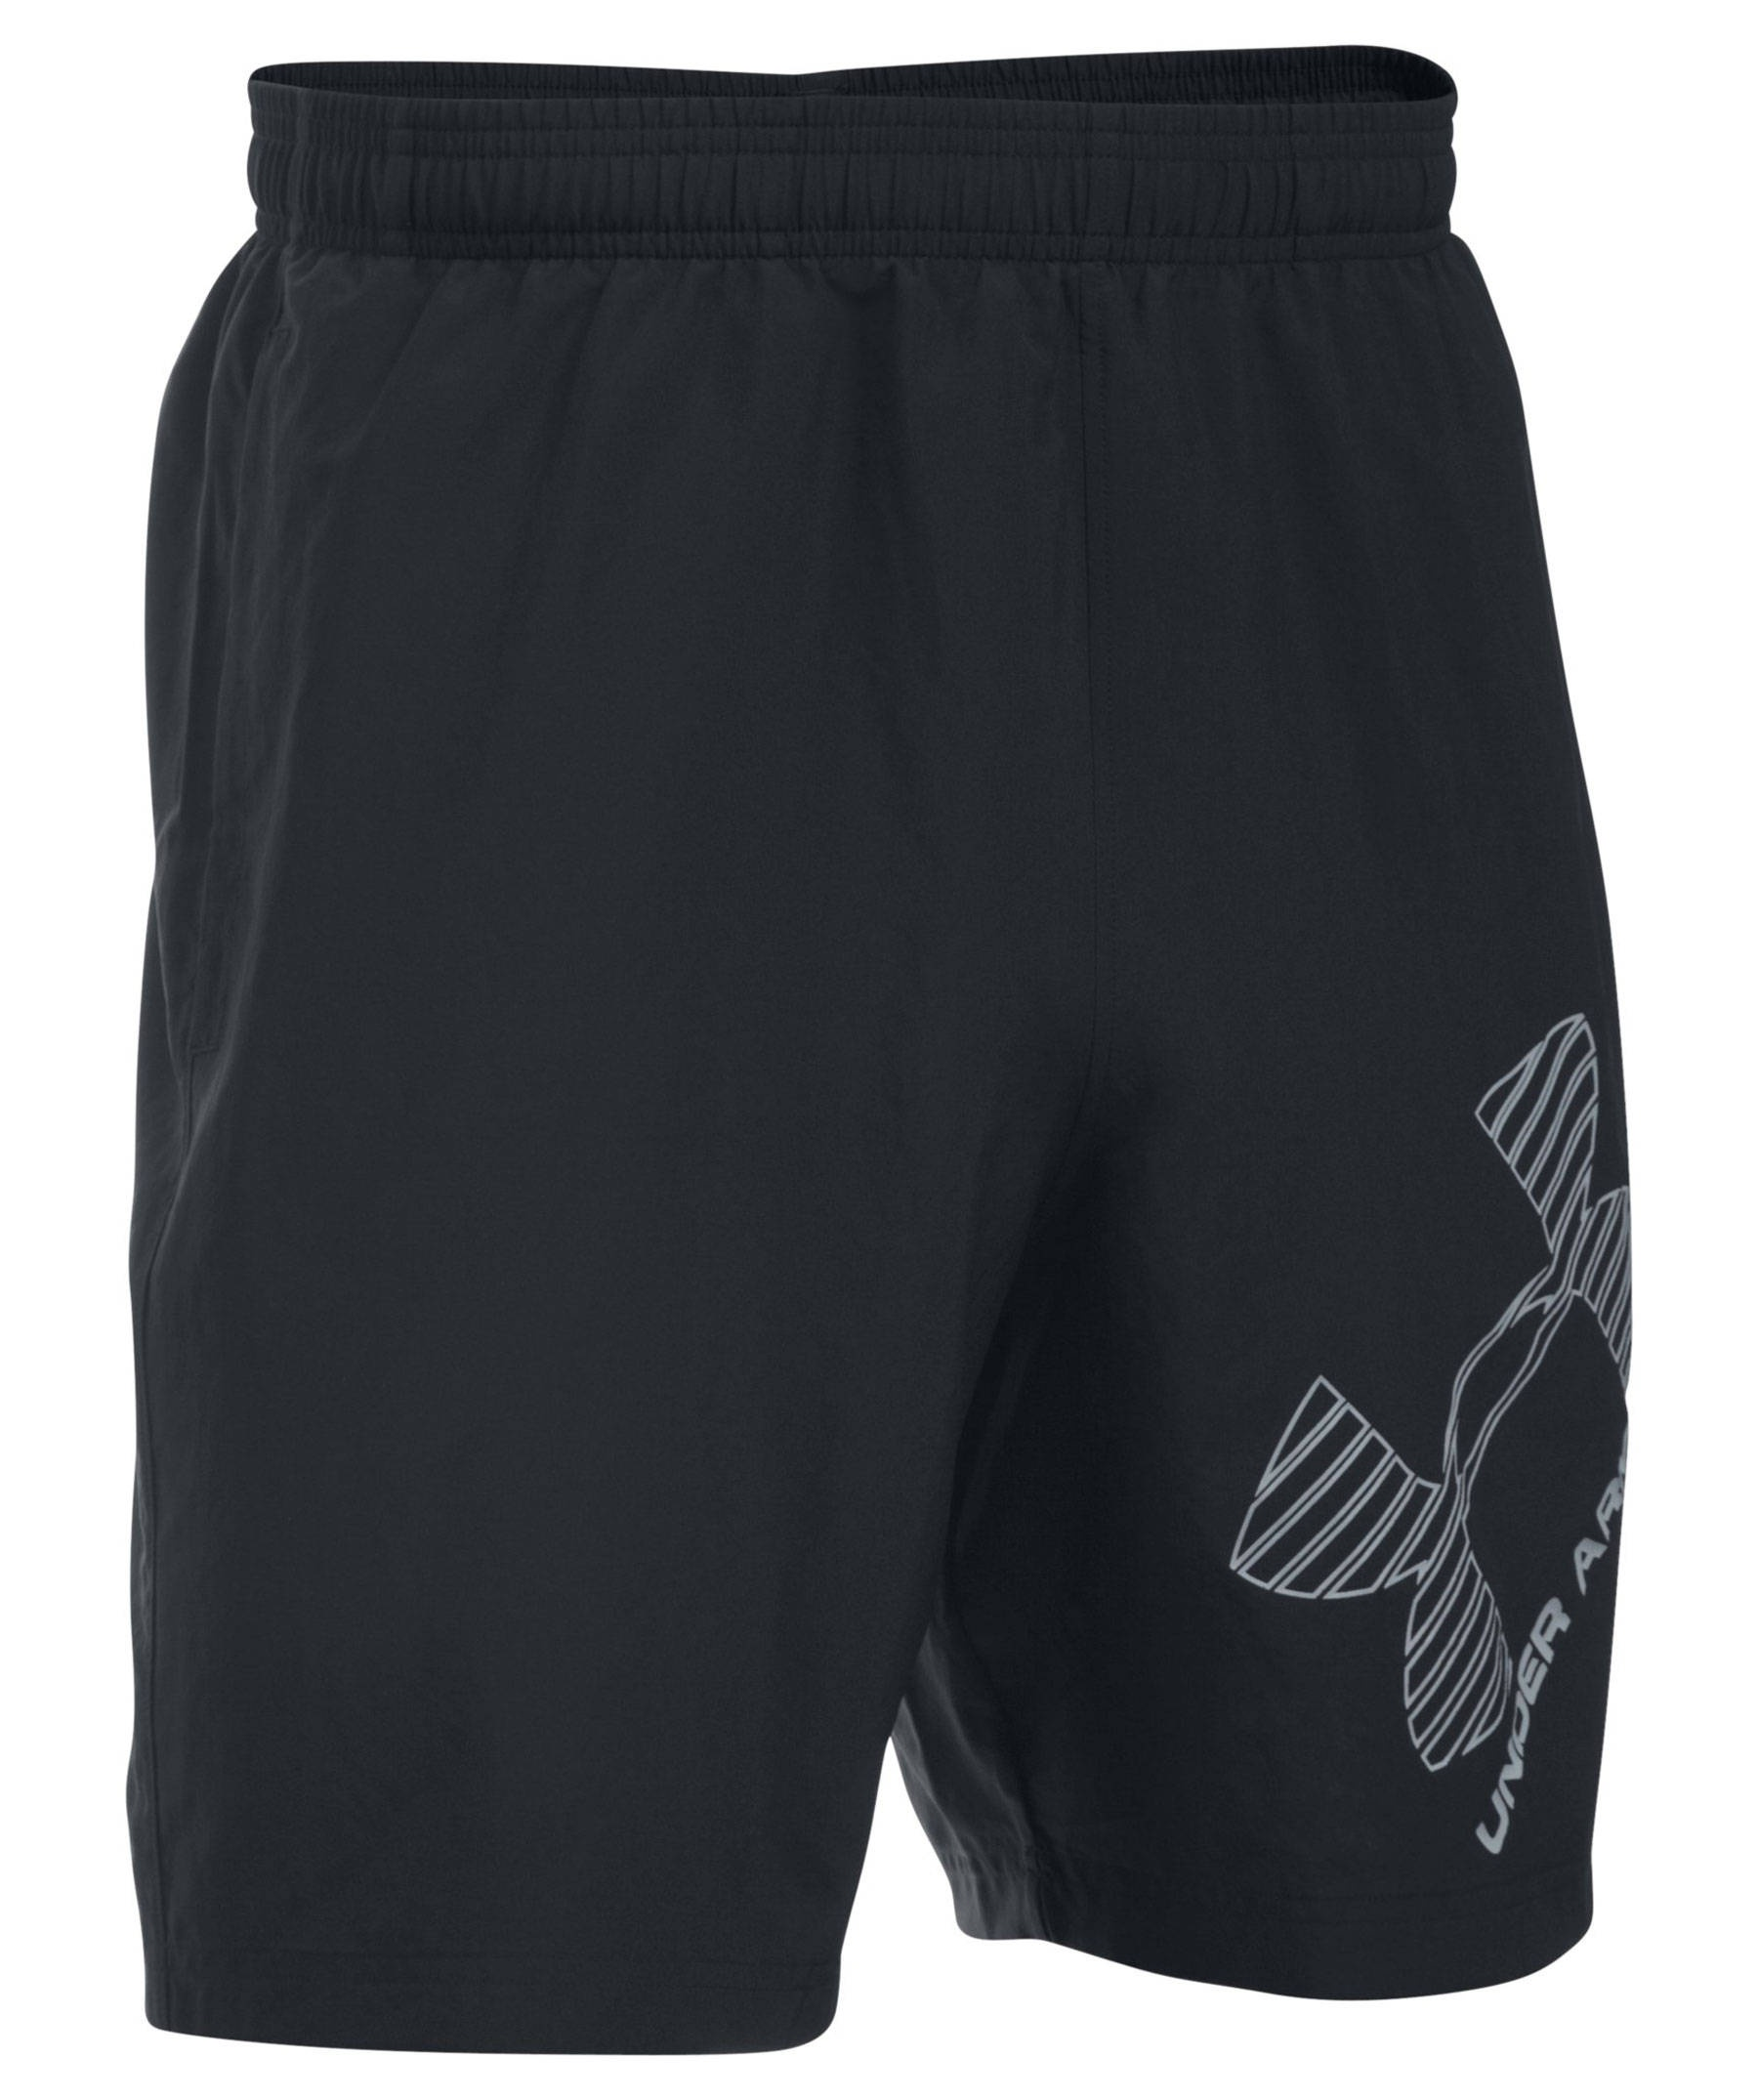 Under Armour Herren Trainingsshorts